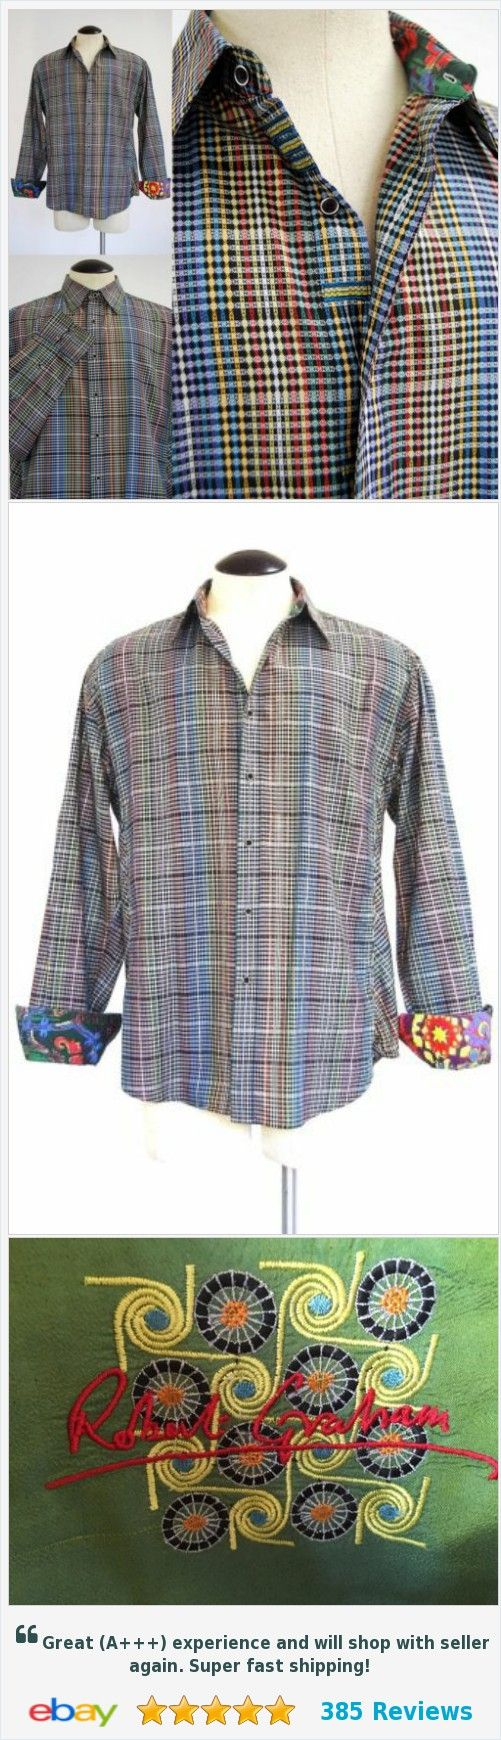 ROBERT GRAHAM XXL Slim Fit Button Shirt Textured Cotton Silk Contrast Cuffs | eBay http://www.ebay.com/itm/ROBERT-GRAHAM-XXL-Slim-Fit-Button-Shirt-Textured-Cotton-Silk-Contrast-Cuffs-/253066084051?ssPageName=STRK:MESE:IT